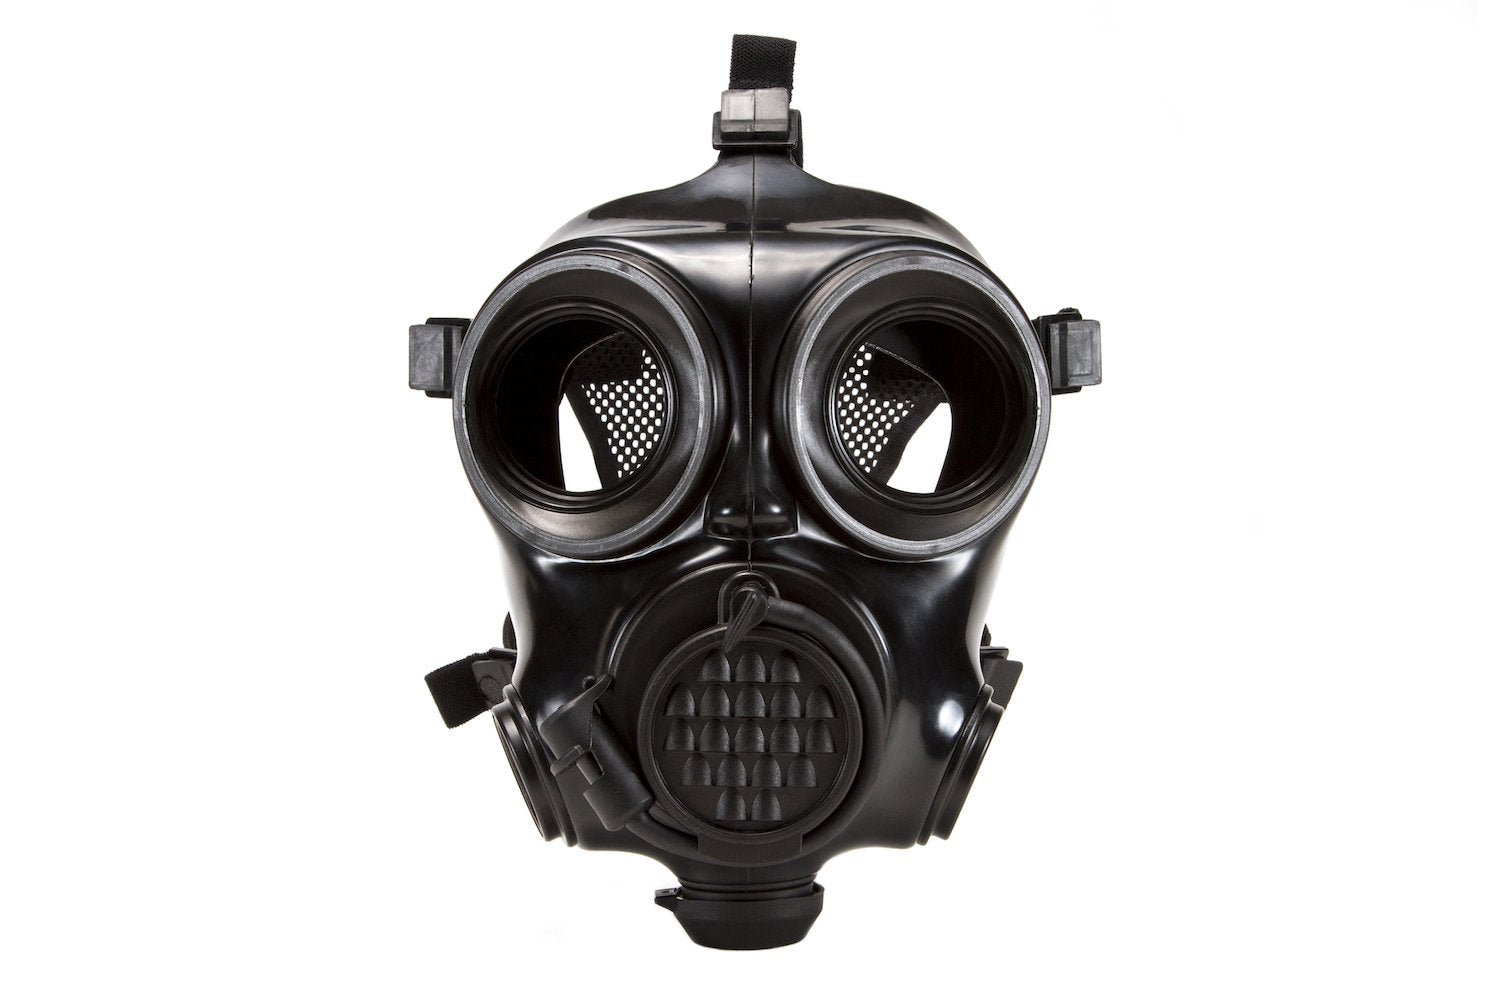 Front view of the CM-7M military gas mask